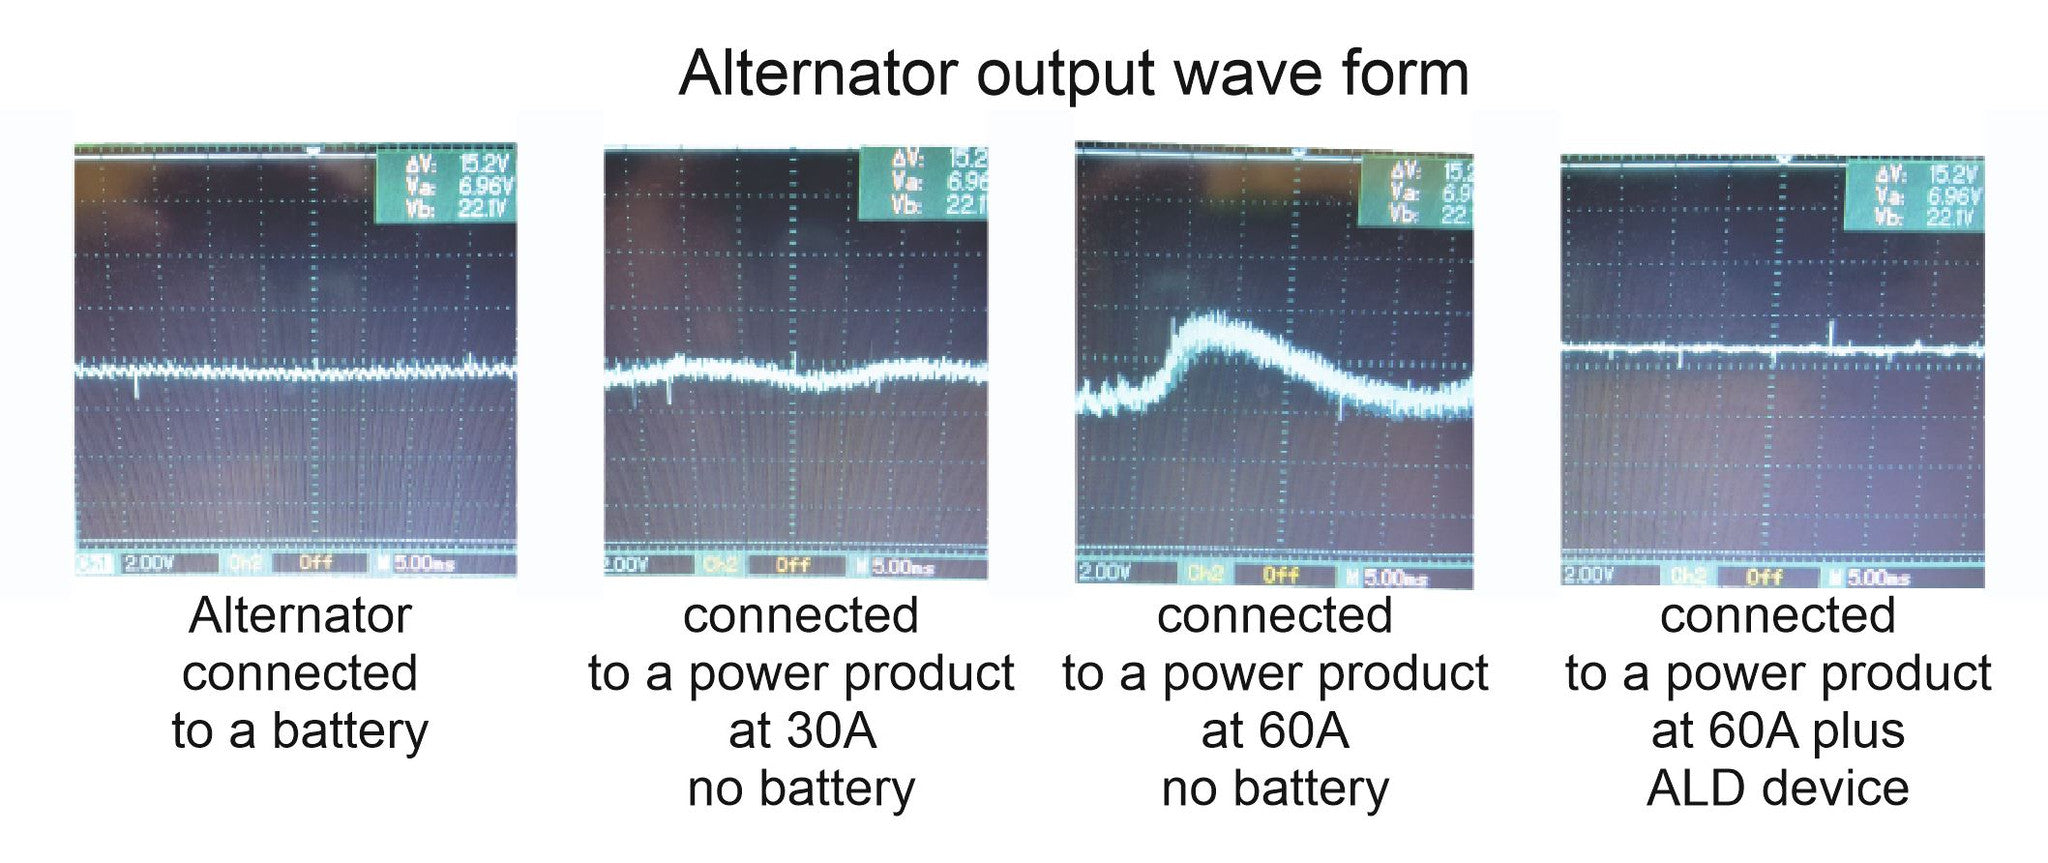 Alternator Linearisation Device 175v 70f Ald 17500 Sterling Sine Wave And Puretrue Inverters Check Out The Diagrams